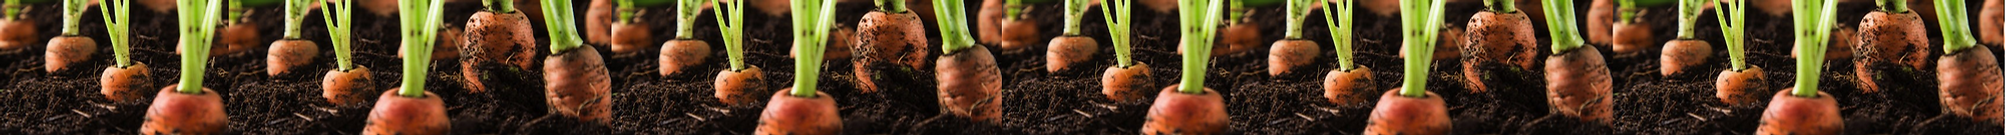 carrots in the ground 3.png